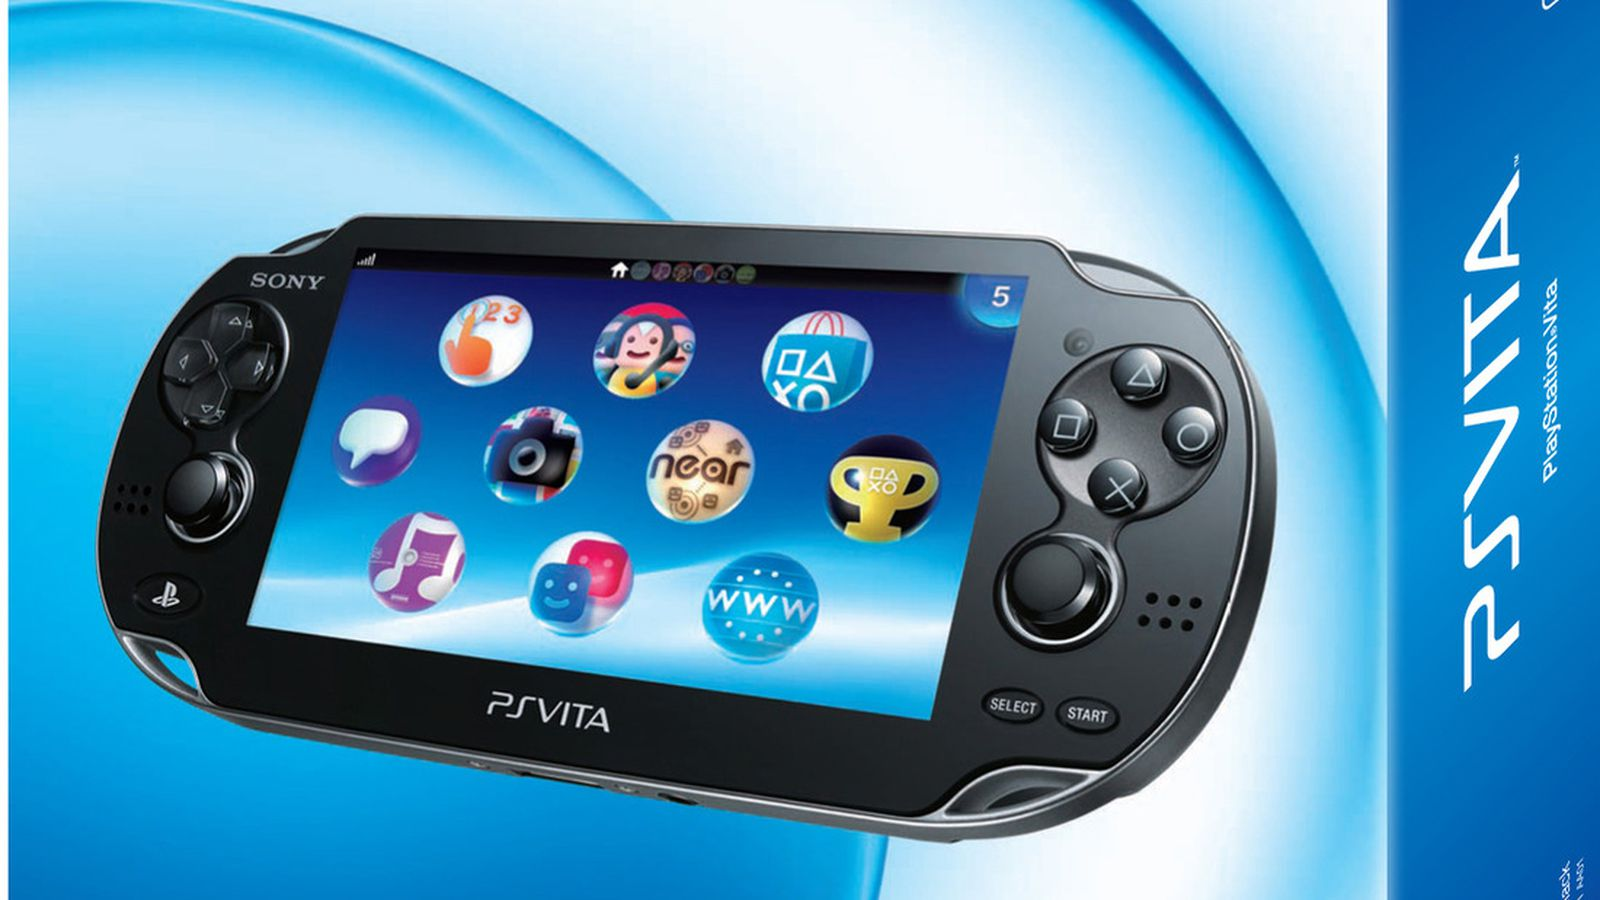 Sony 60 Percent Of Psp Owners Plan To Upgrade To Vita The Verge